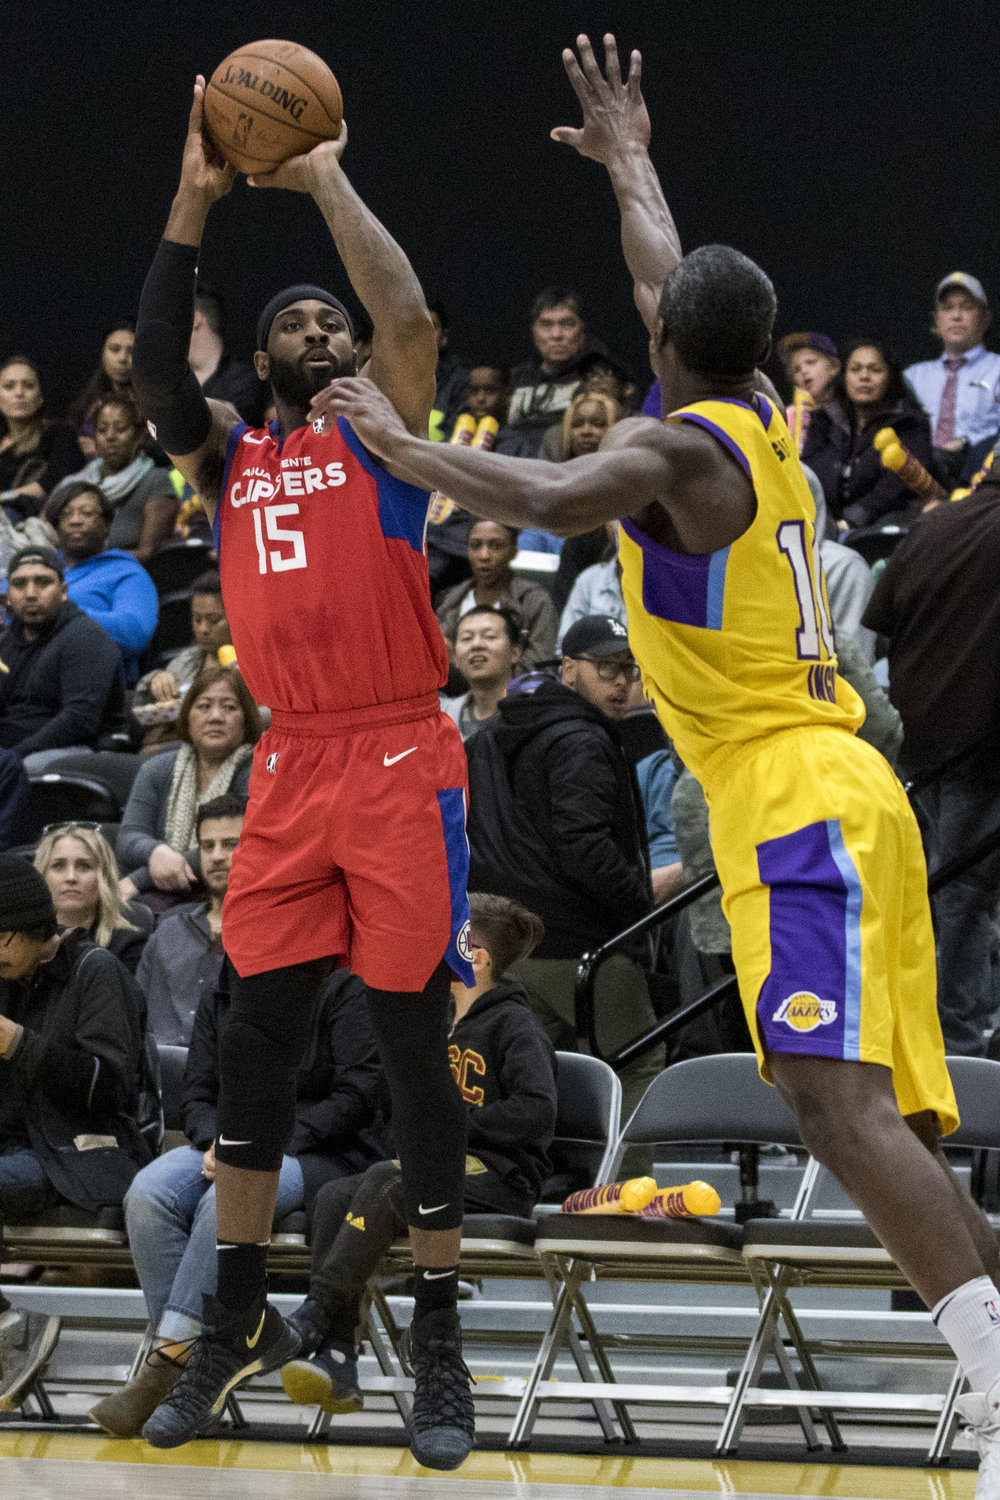 Agua Caliente Clippers forward LaDontae Henton (15, left) shoots a 3 point shot while South Bay Lakers guard Andre Ingram (10, right) contests it during their Gatorade League game on March 16, 2017 at the UCLA Health Stadium in El Segundo,California. The Lakers won 108-104. (Zane Meyer-Thornton/Corsair Photo)